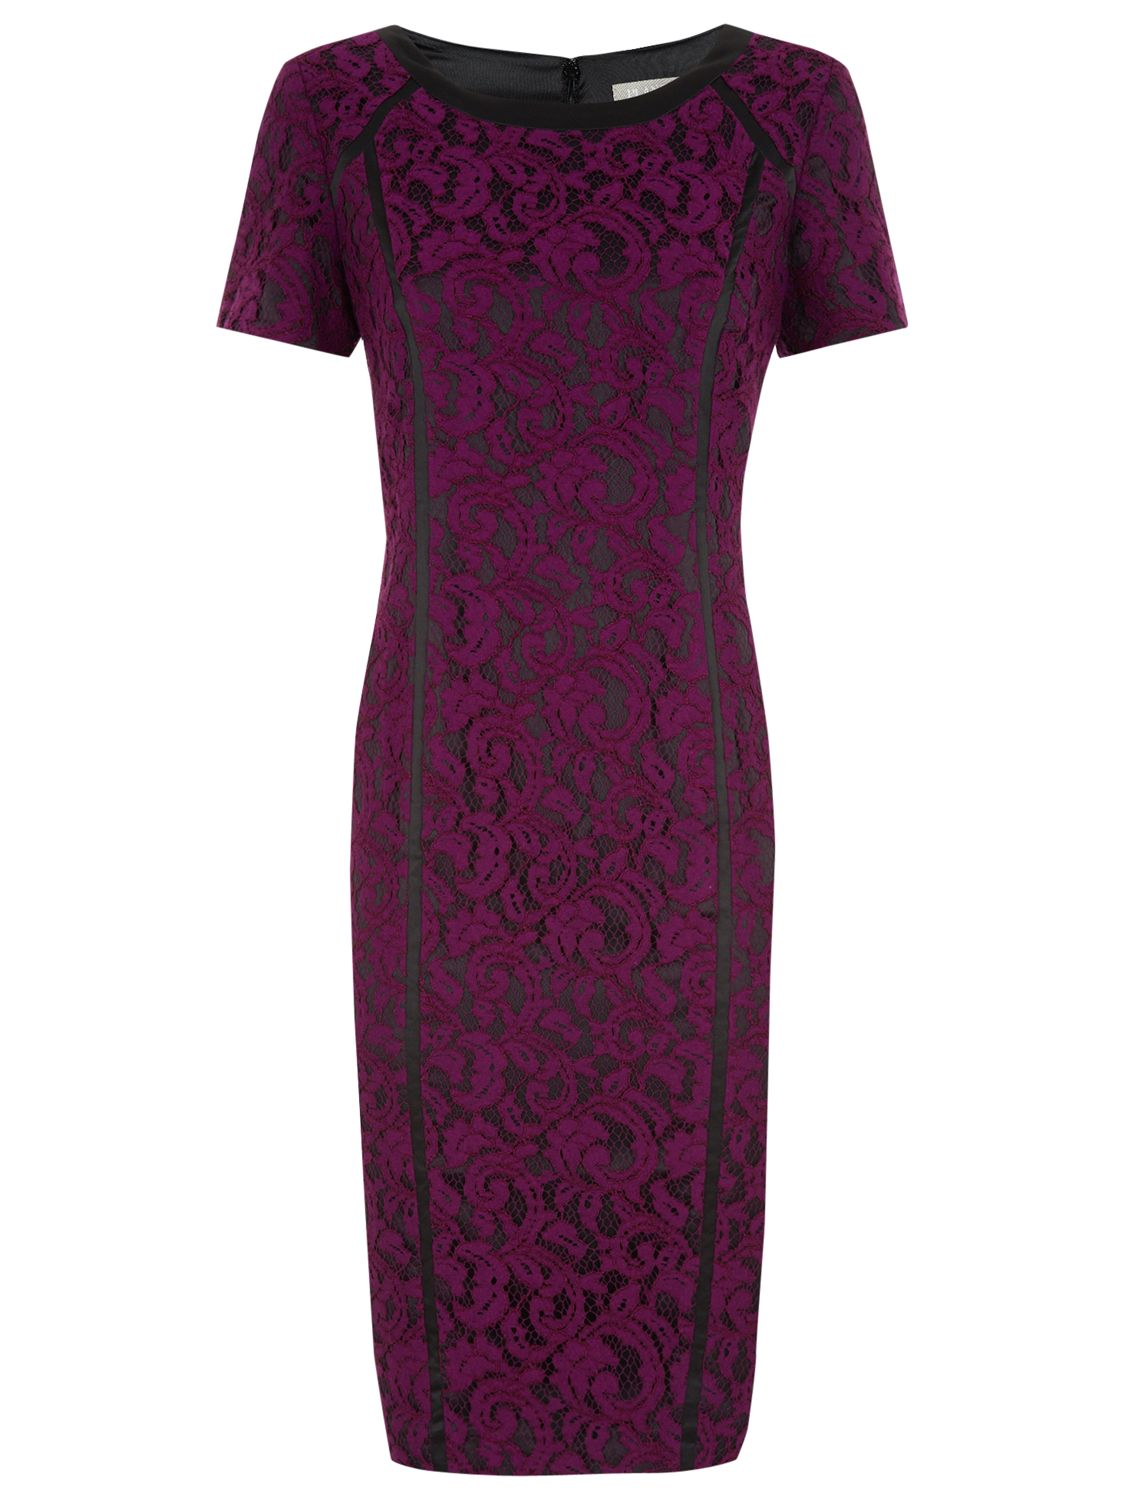 planet high waist lace dress wine / black, planet, high, waist, lace, dress, wine, black, 20|10|14|18|16|12|8, clearance, womenswear offers, womens dresses offers, women, plus size, party outfits, lace dress, womens dresses, special offers, 1607401